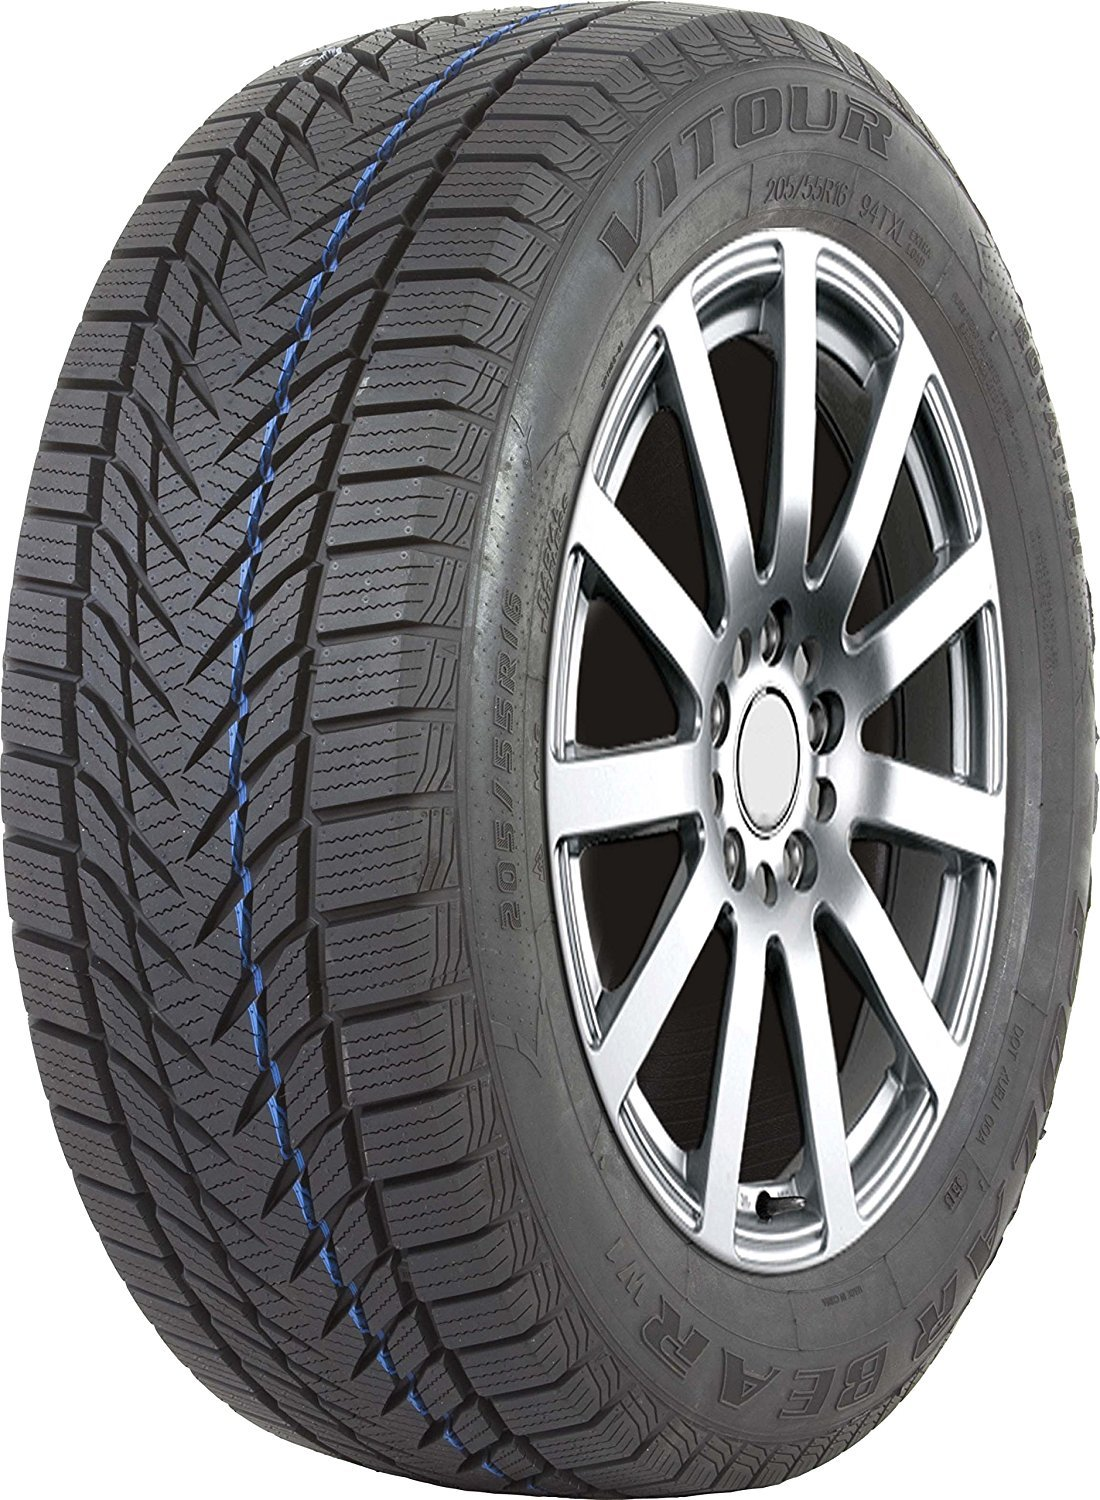 Vitour POLAR BEAR W1 Studless-Winter Radial Tire - 215/70R15 98T by Vitour (Image #1)